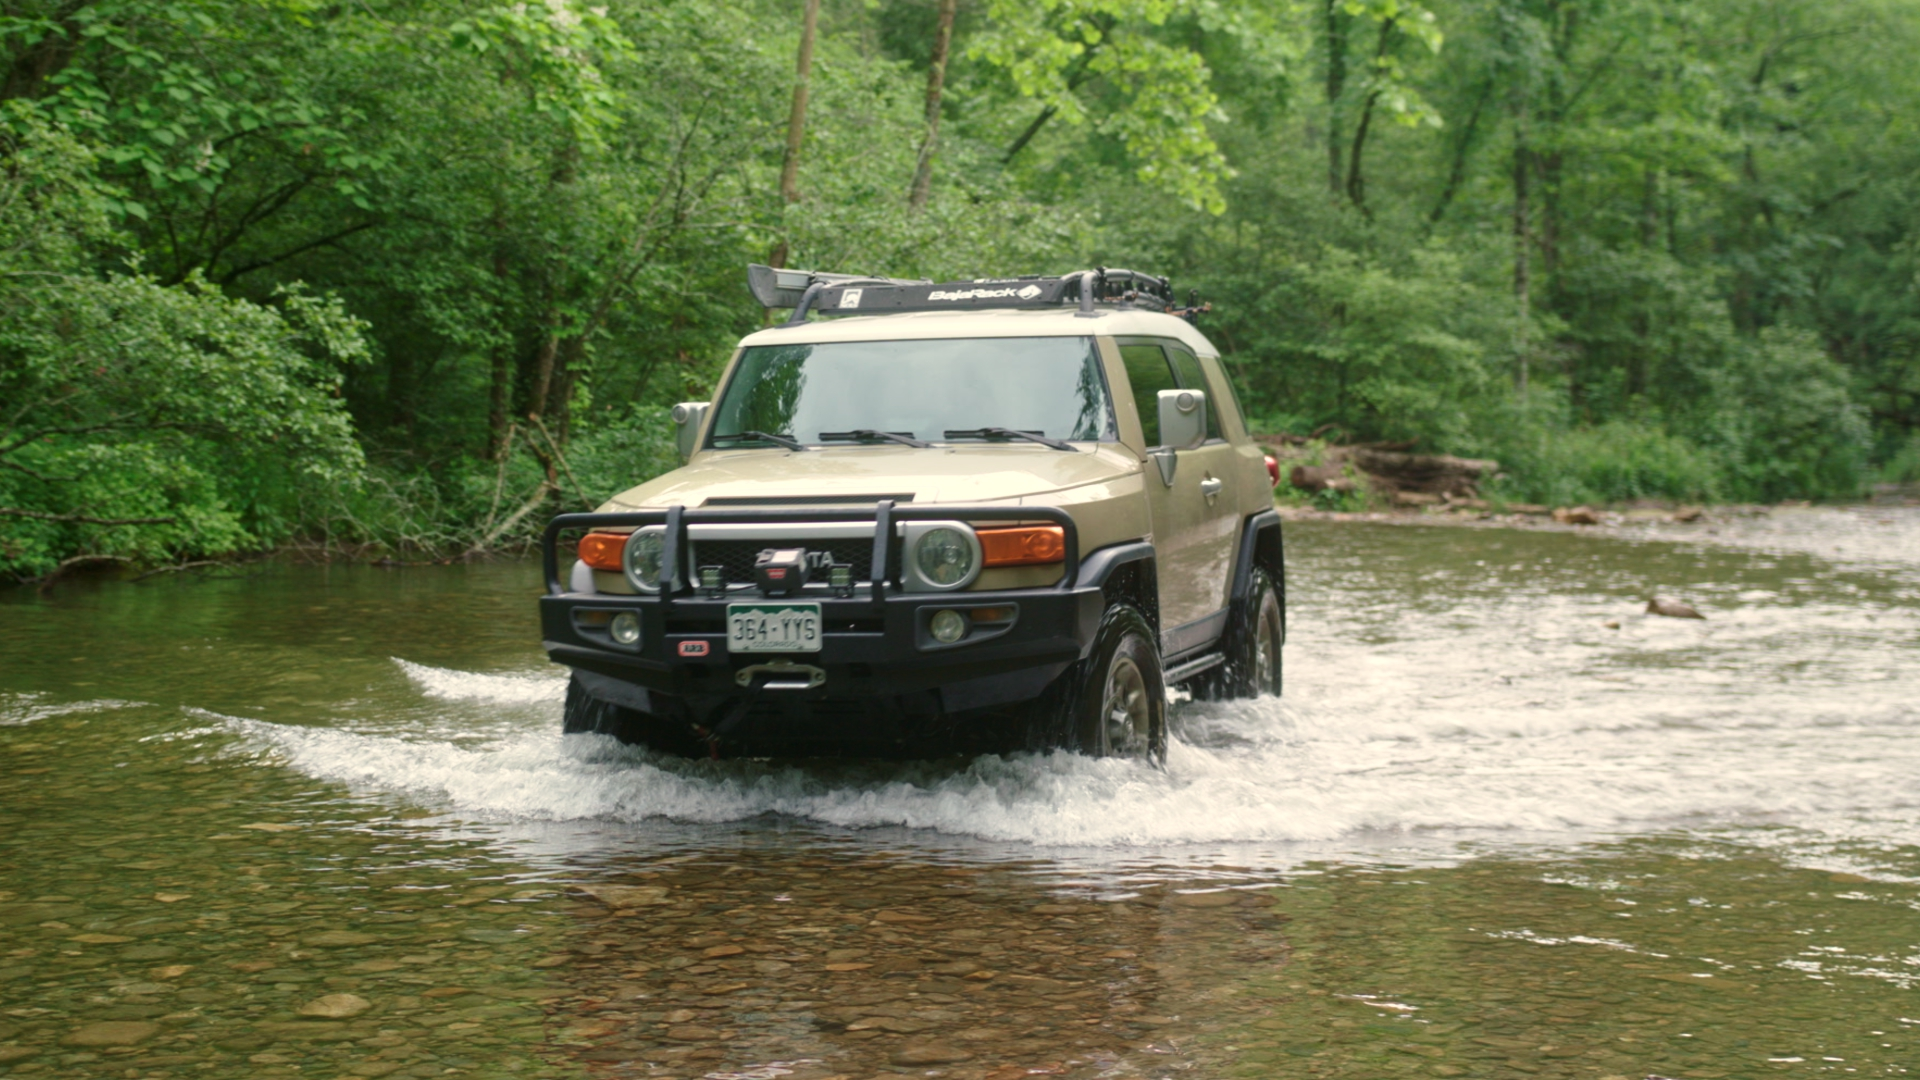 Ronnie's FJ Cruiser. Our scouting vehicle for pre-production and featured in the video.